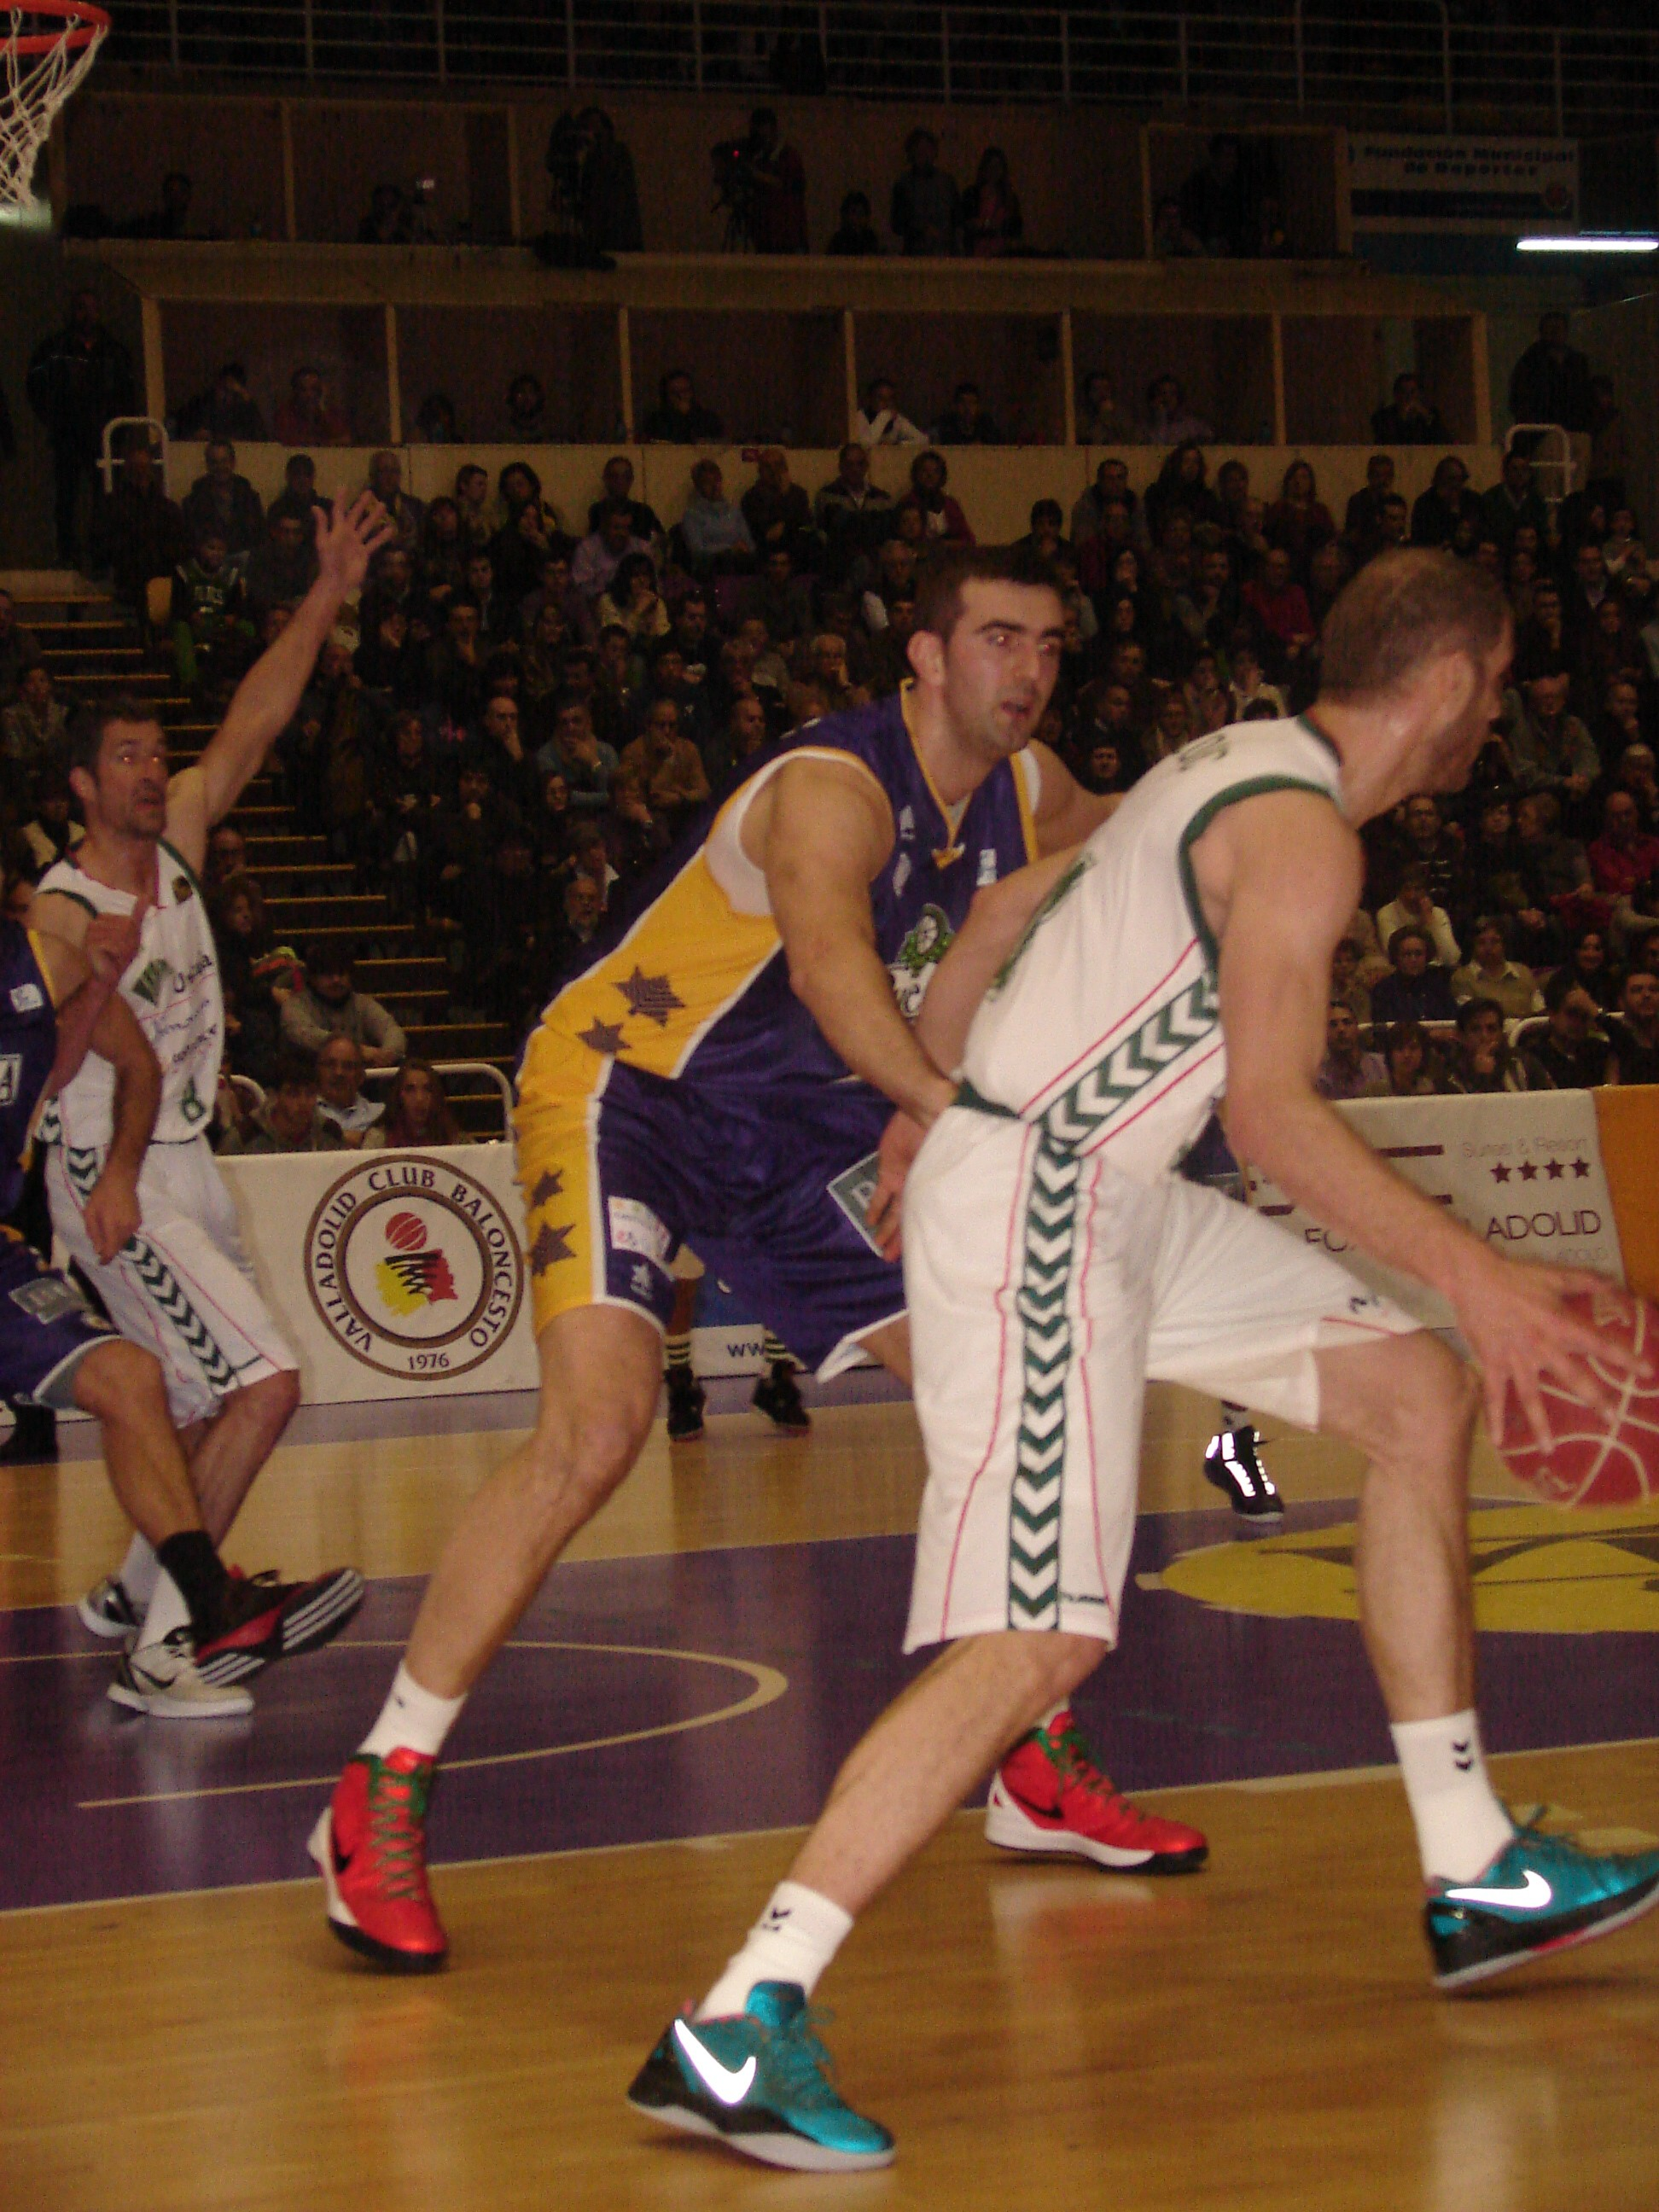 Sinanovic vs. Zoric (Fotos: Jose Navas)